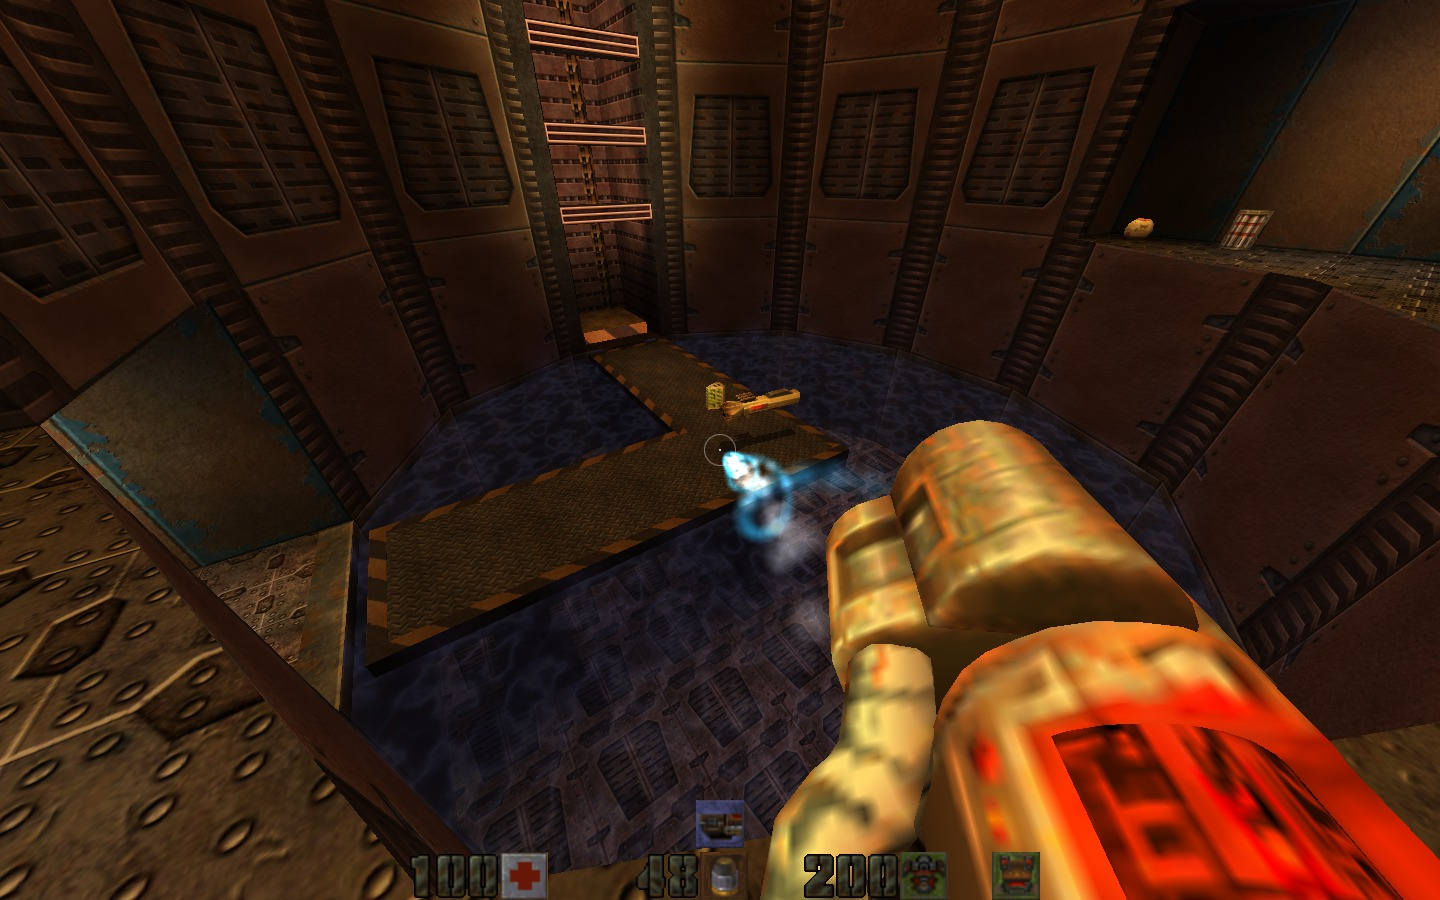 Quake II for Mac and Linux